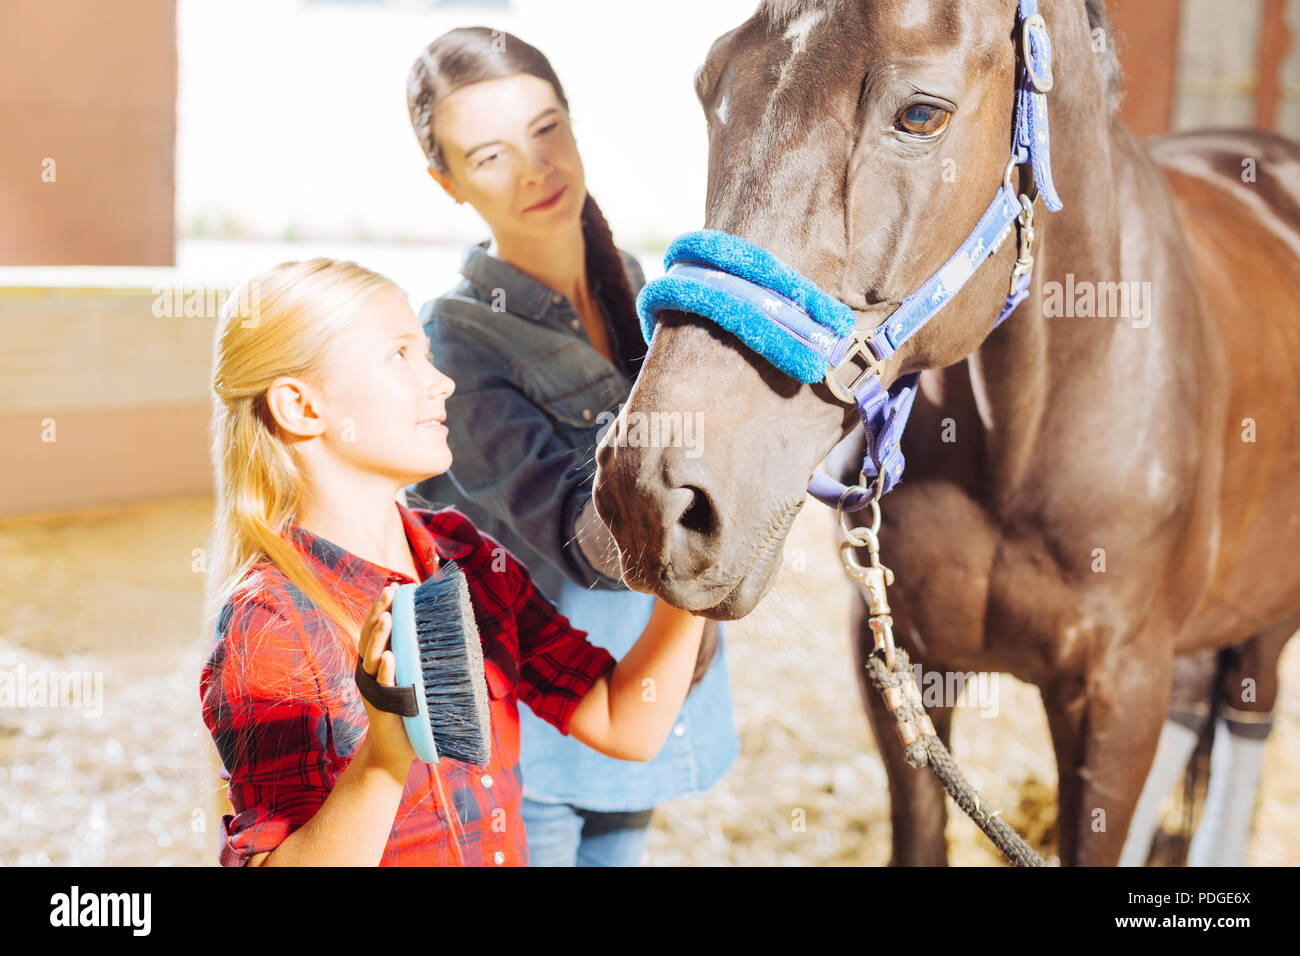 Blonde-haired daughter joining her mother while cleaning horse - Stock Image